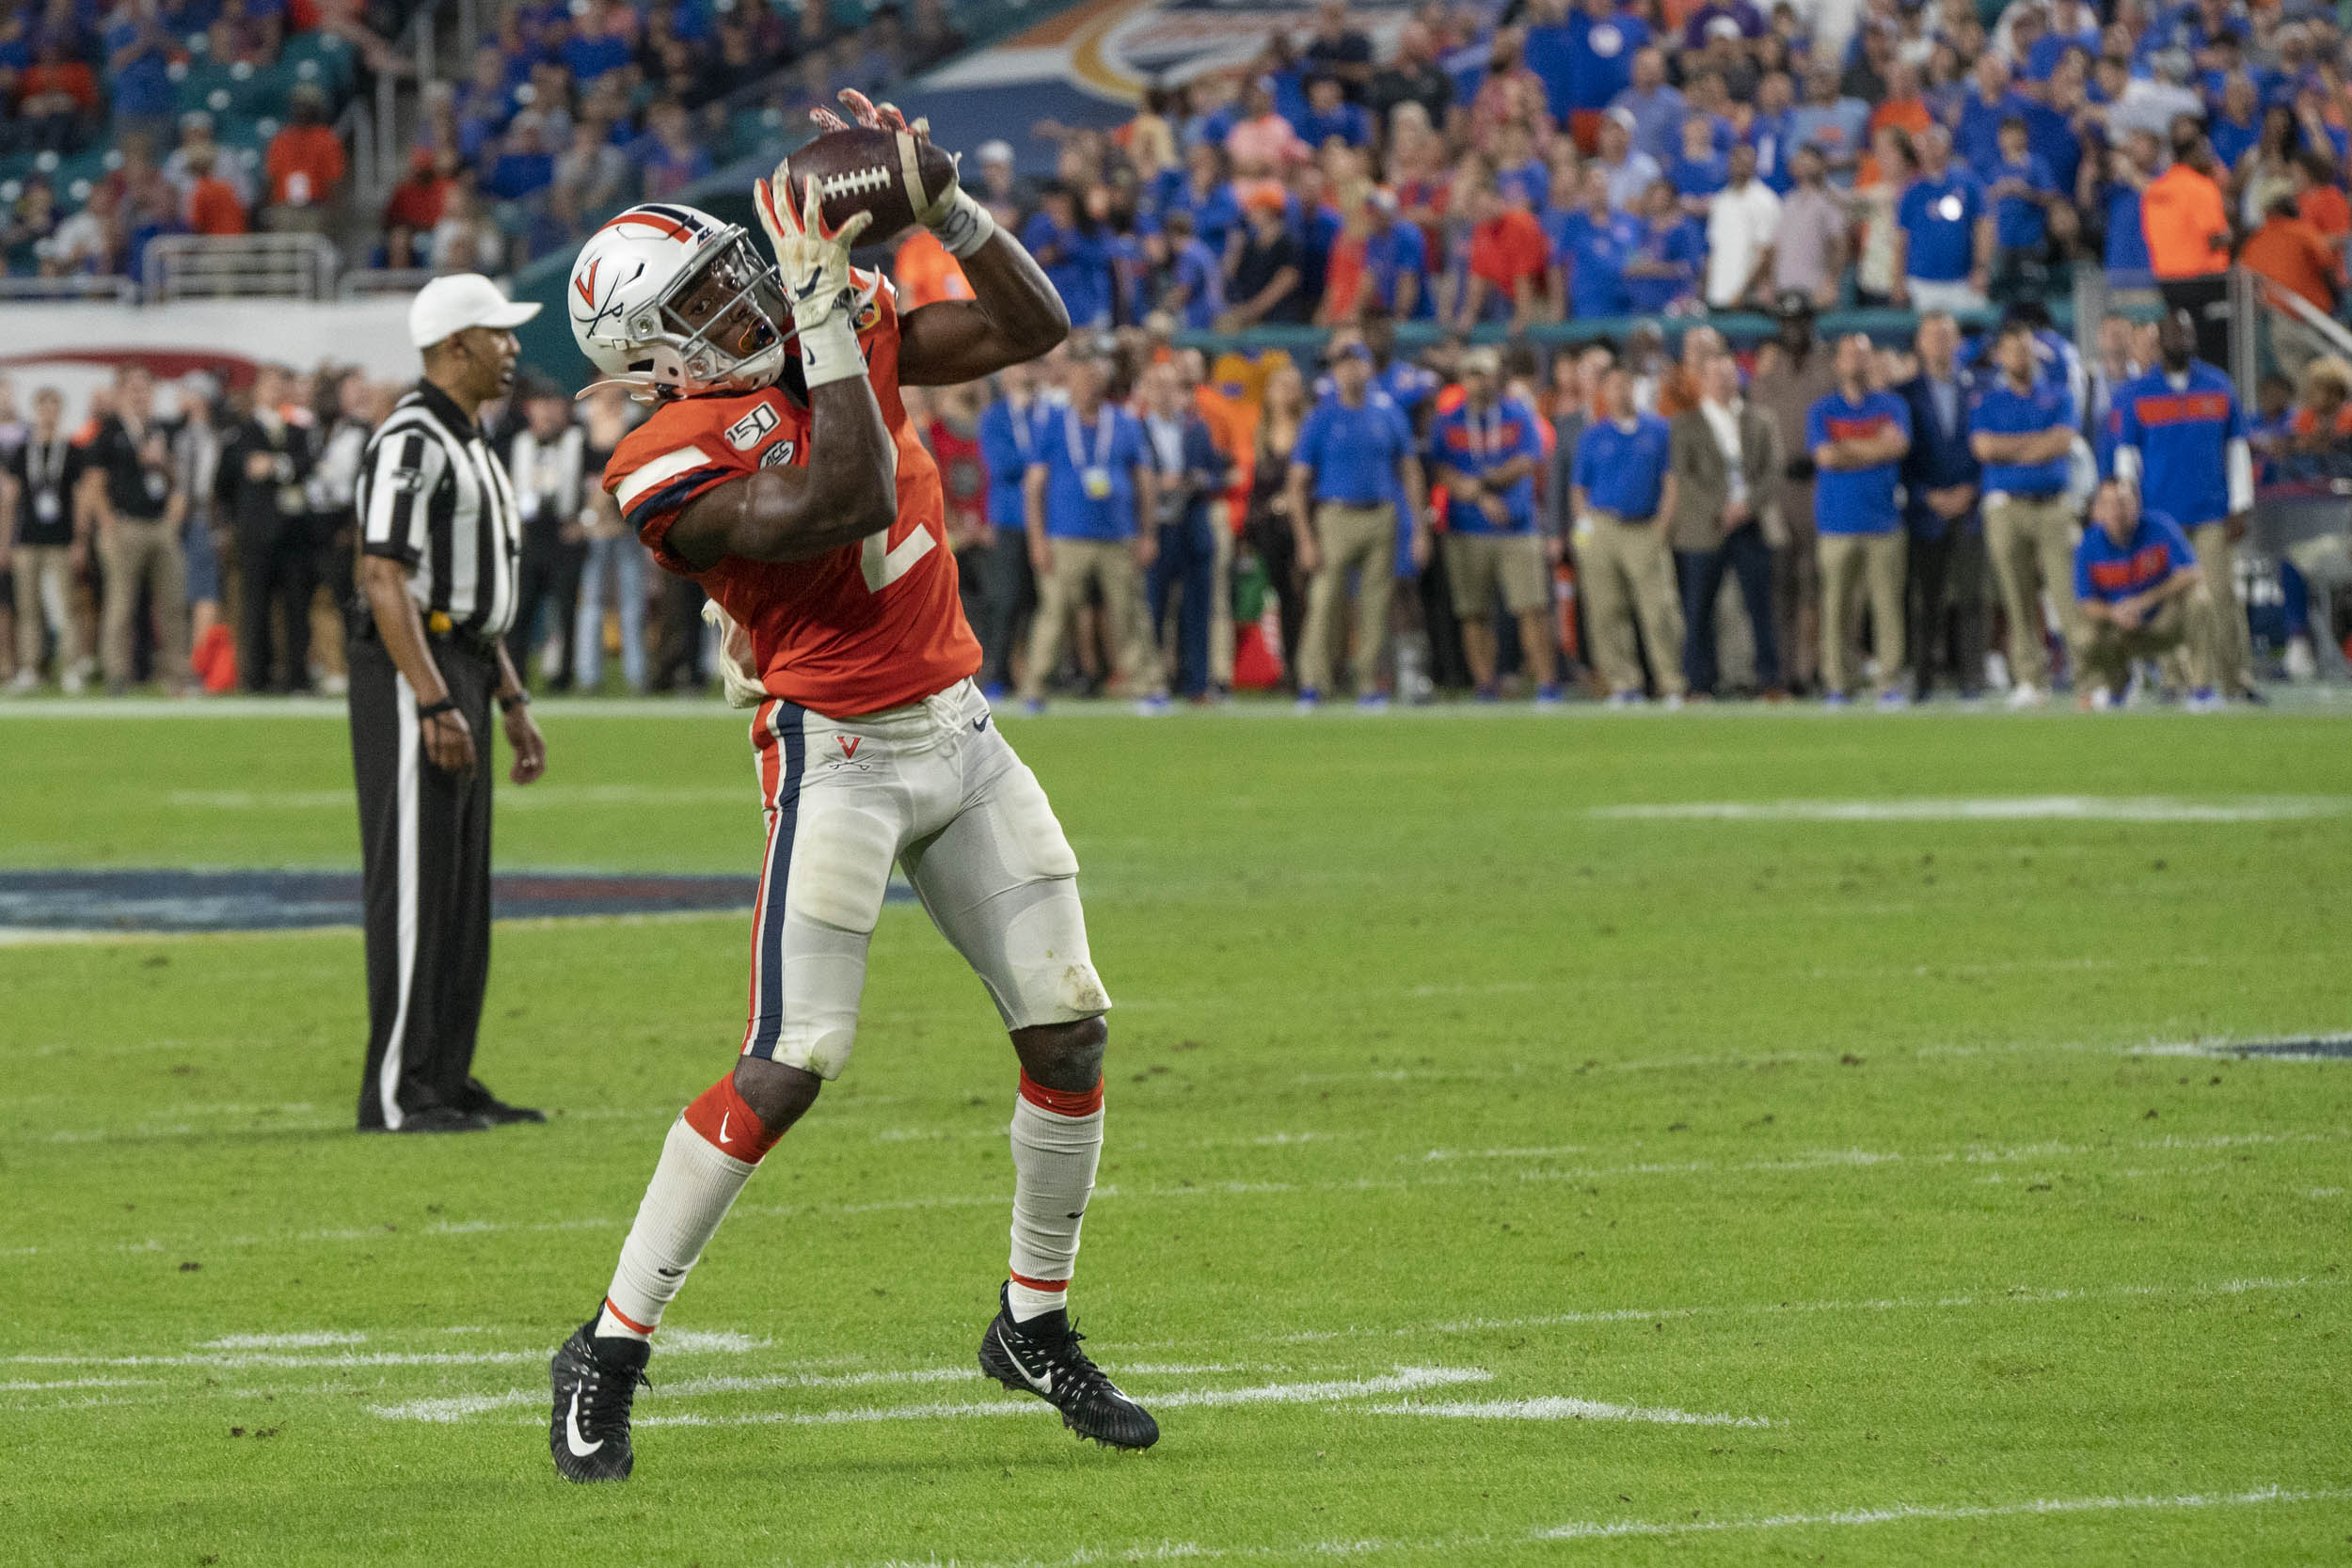 Wide receiver Joe Reed – responsible for one of UVA's four touchdown catches – makes a grab to keep a drive alive.